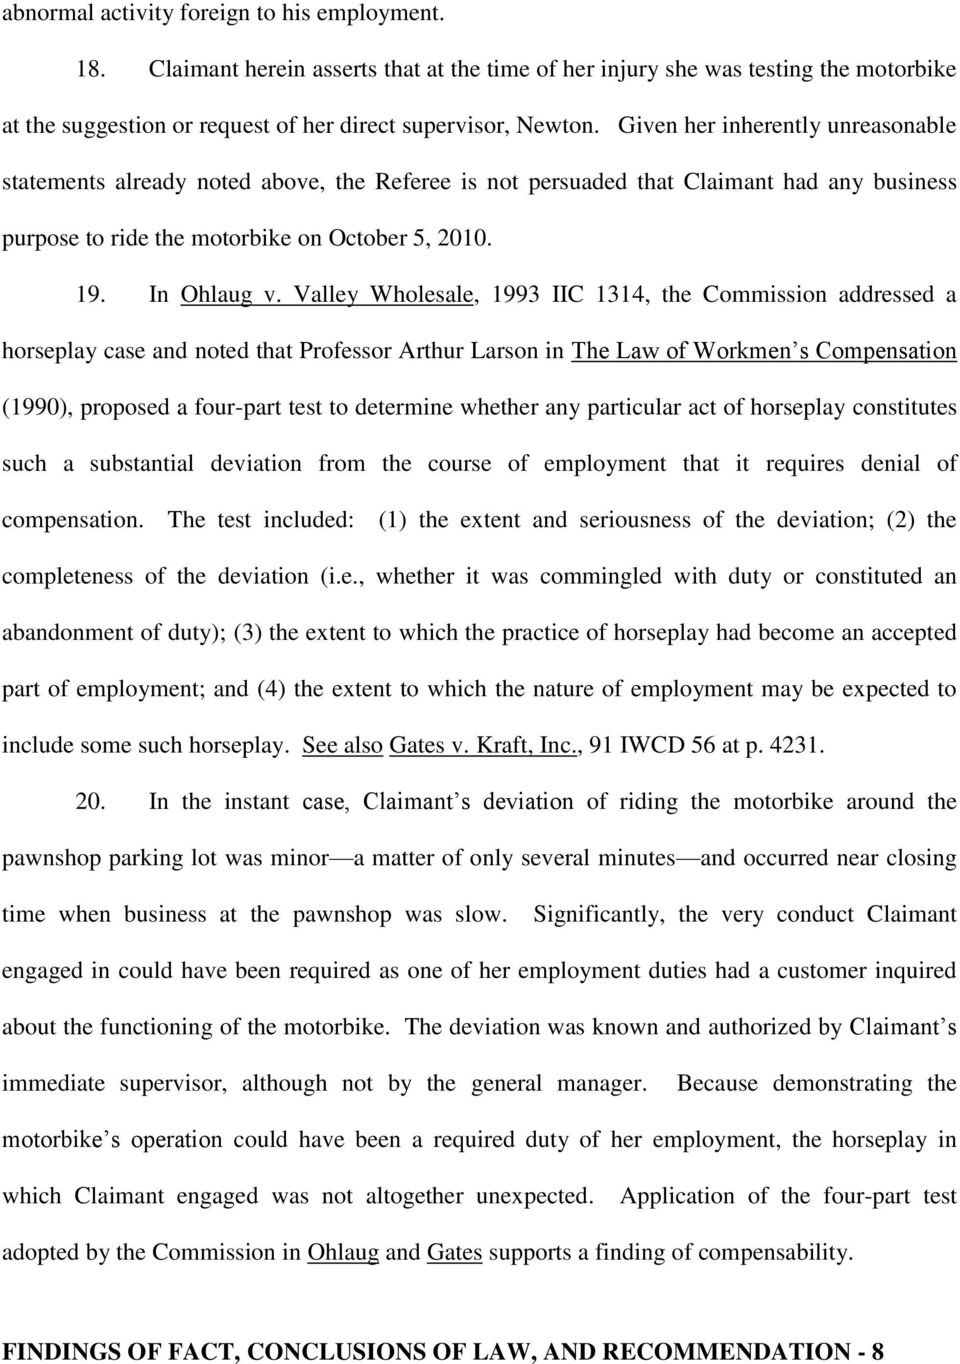 Valley Wholesale, 1993 IIC 1314, the Commission addressed a horseplay case and noted that Professor Arthur Larson in The Law of Workmen s Compensation (1990, proposed a four-part test to determine